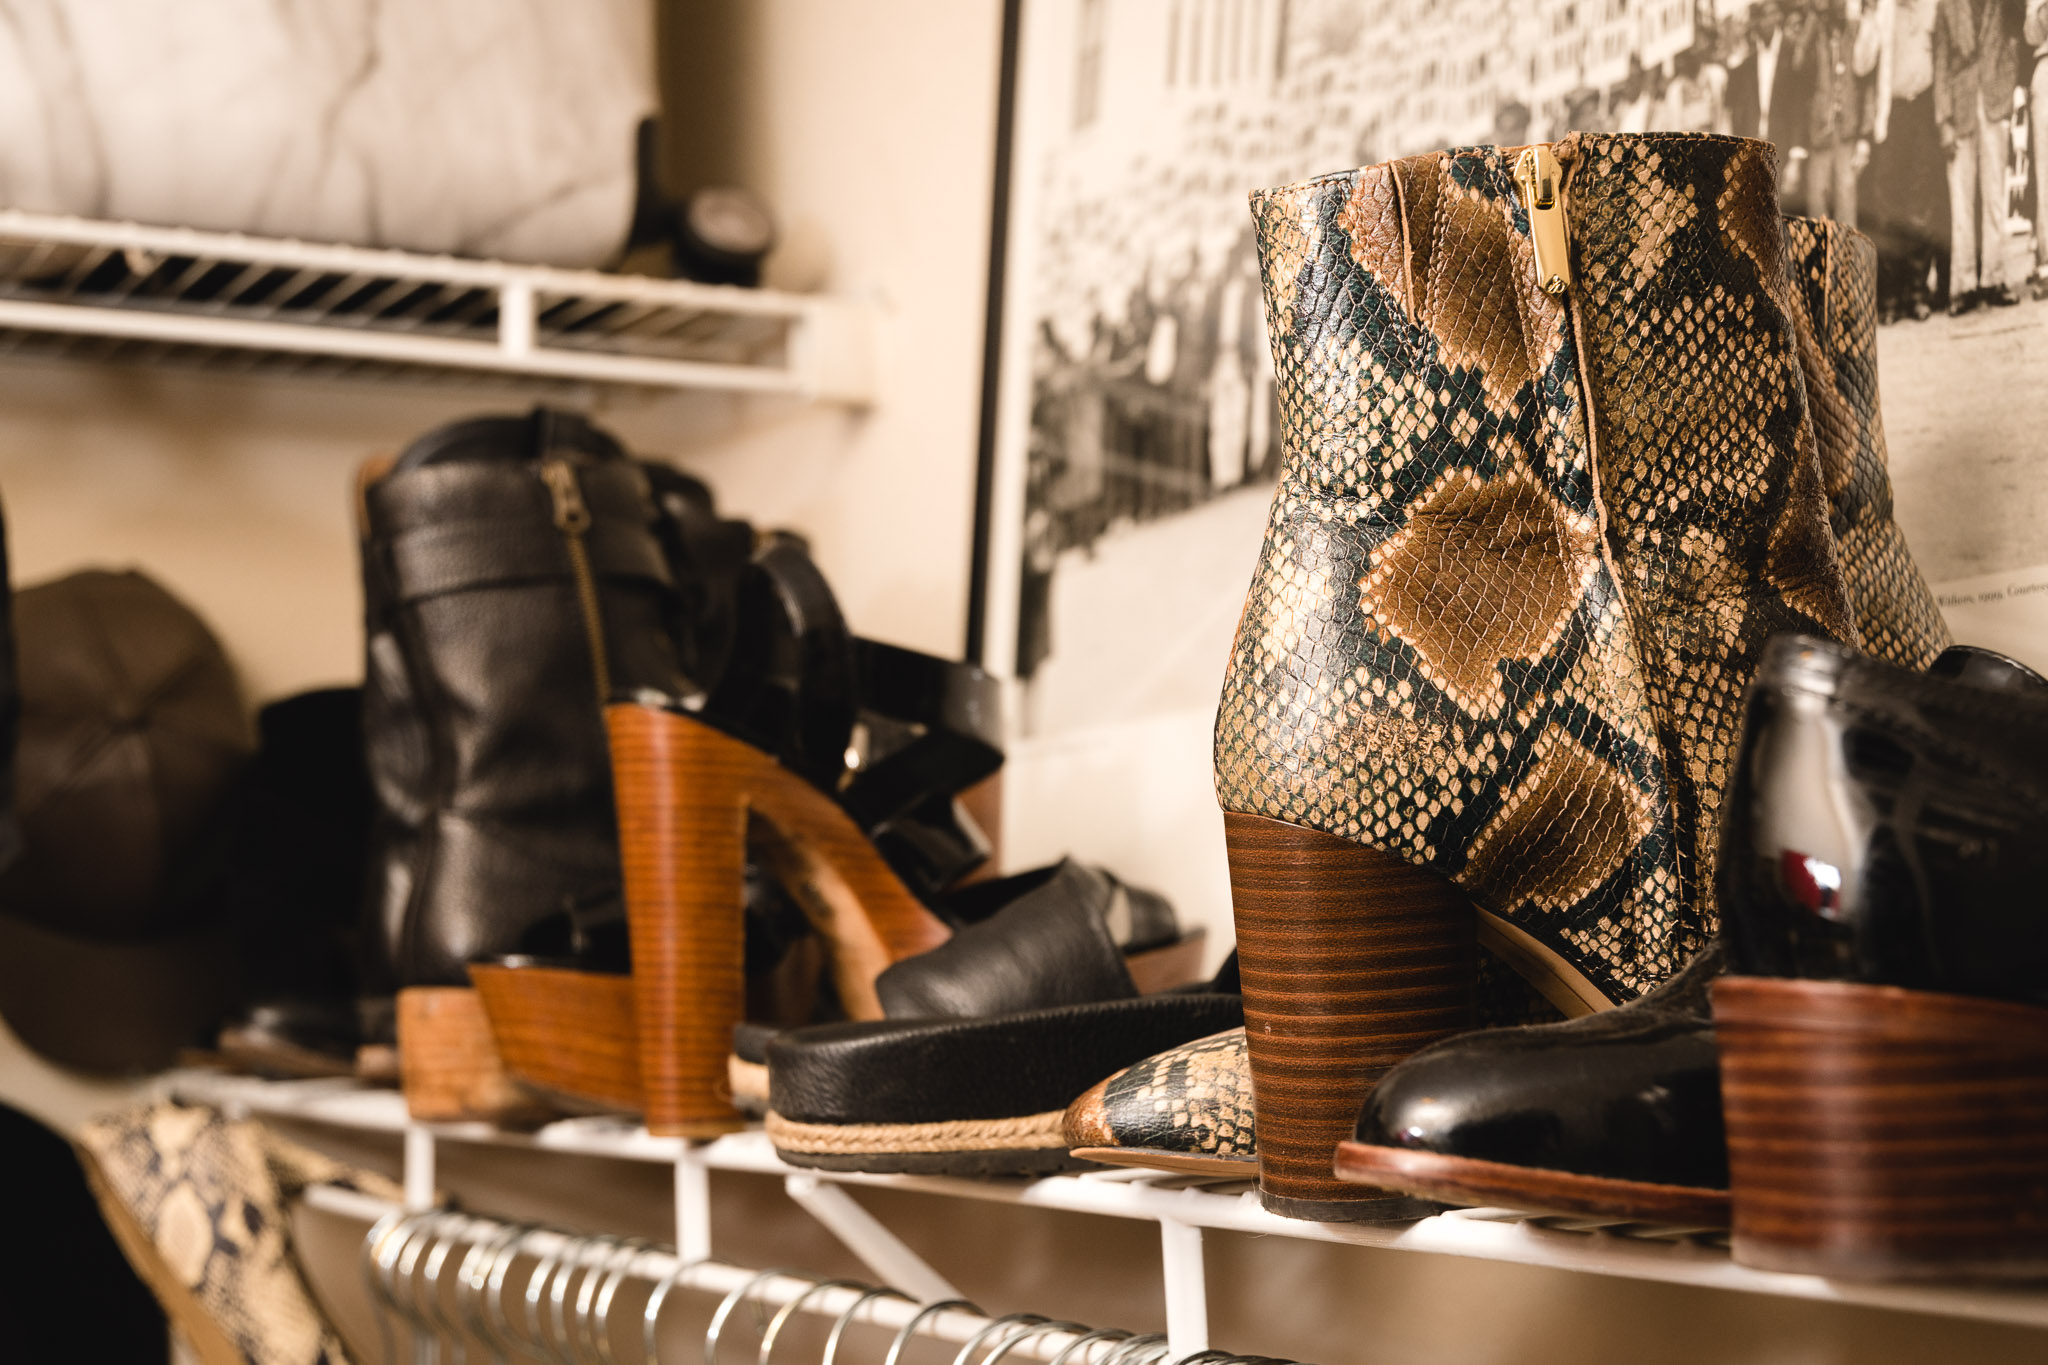 Place one shoe forward and one shoe backwards to create more space amongst shoes and easily create outfits incorporating the design details of the shoes.